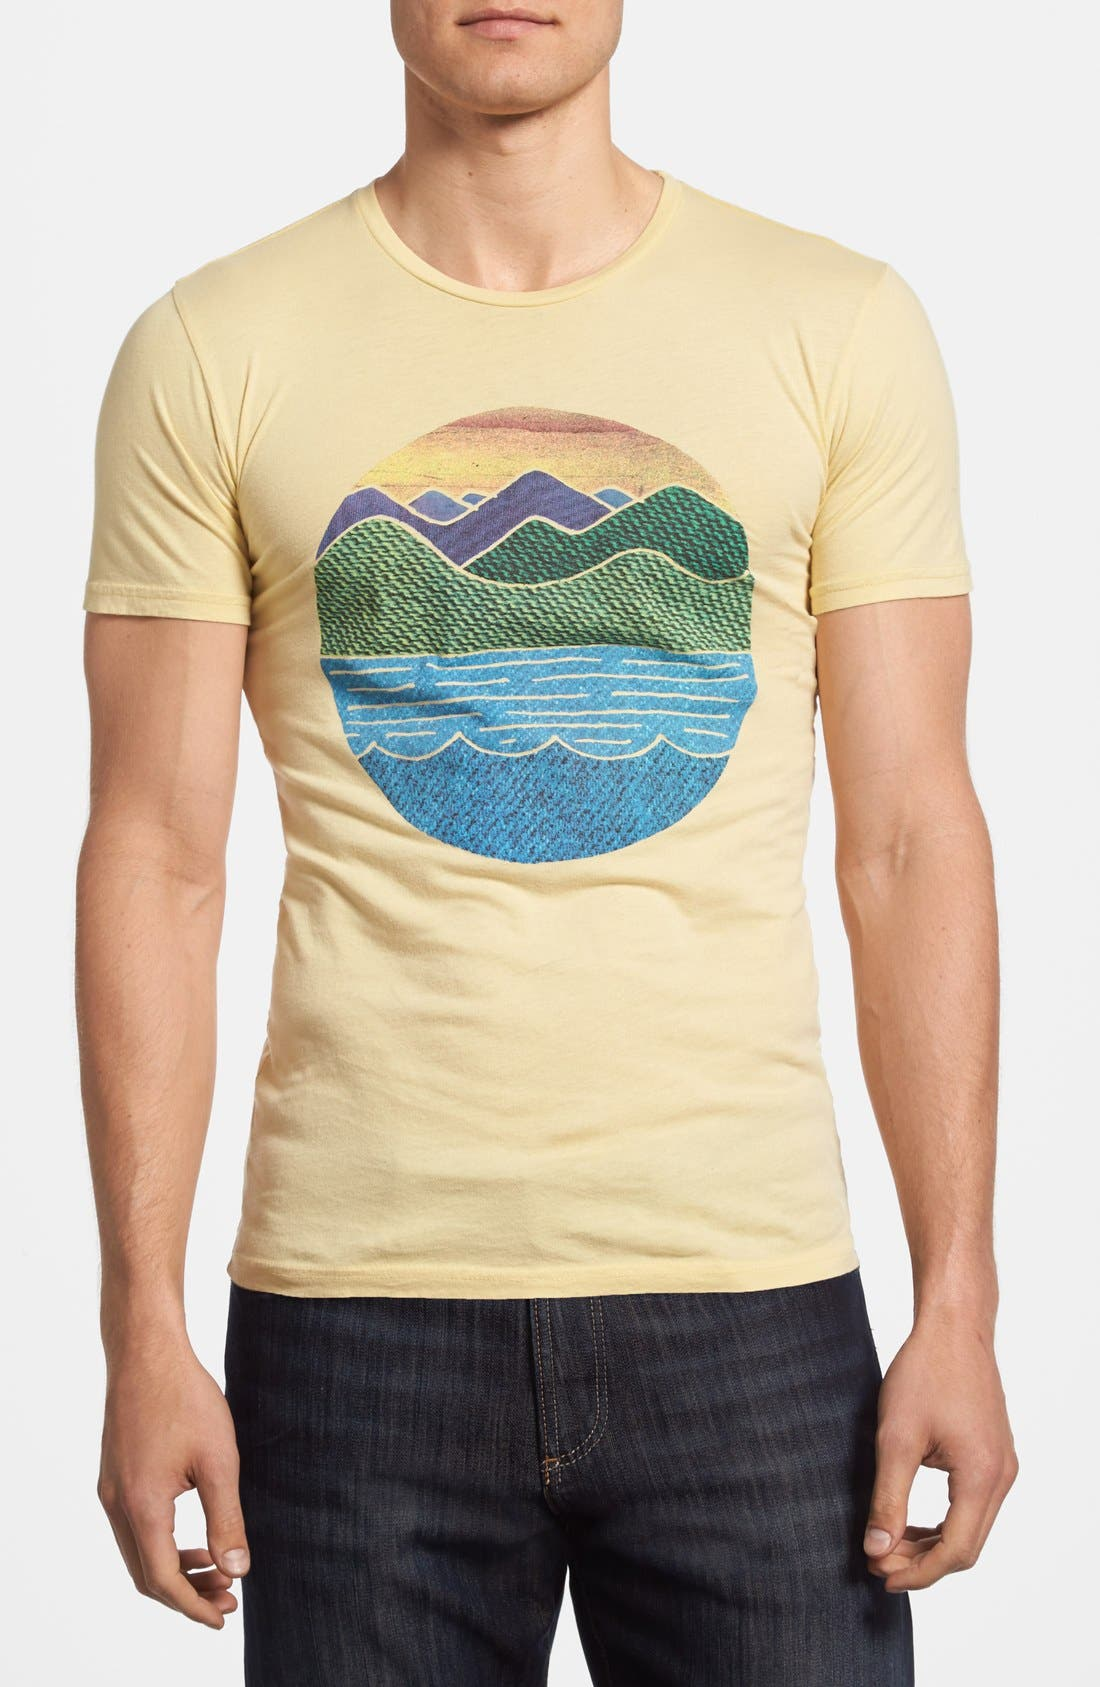 Alternate Image 1 Selected - Altru 'Circle Scape' Graphic T-Shirt